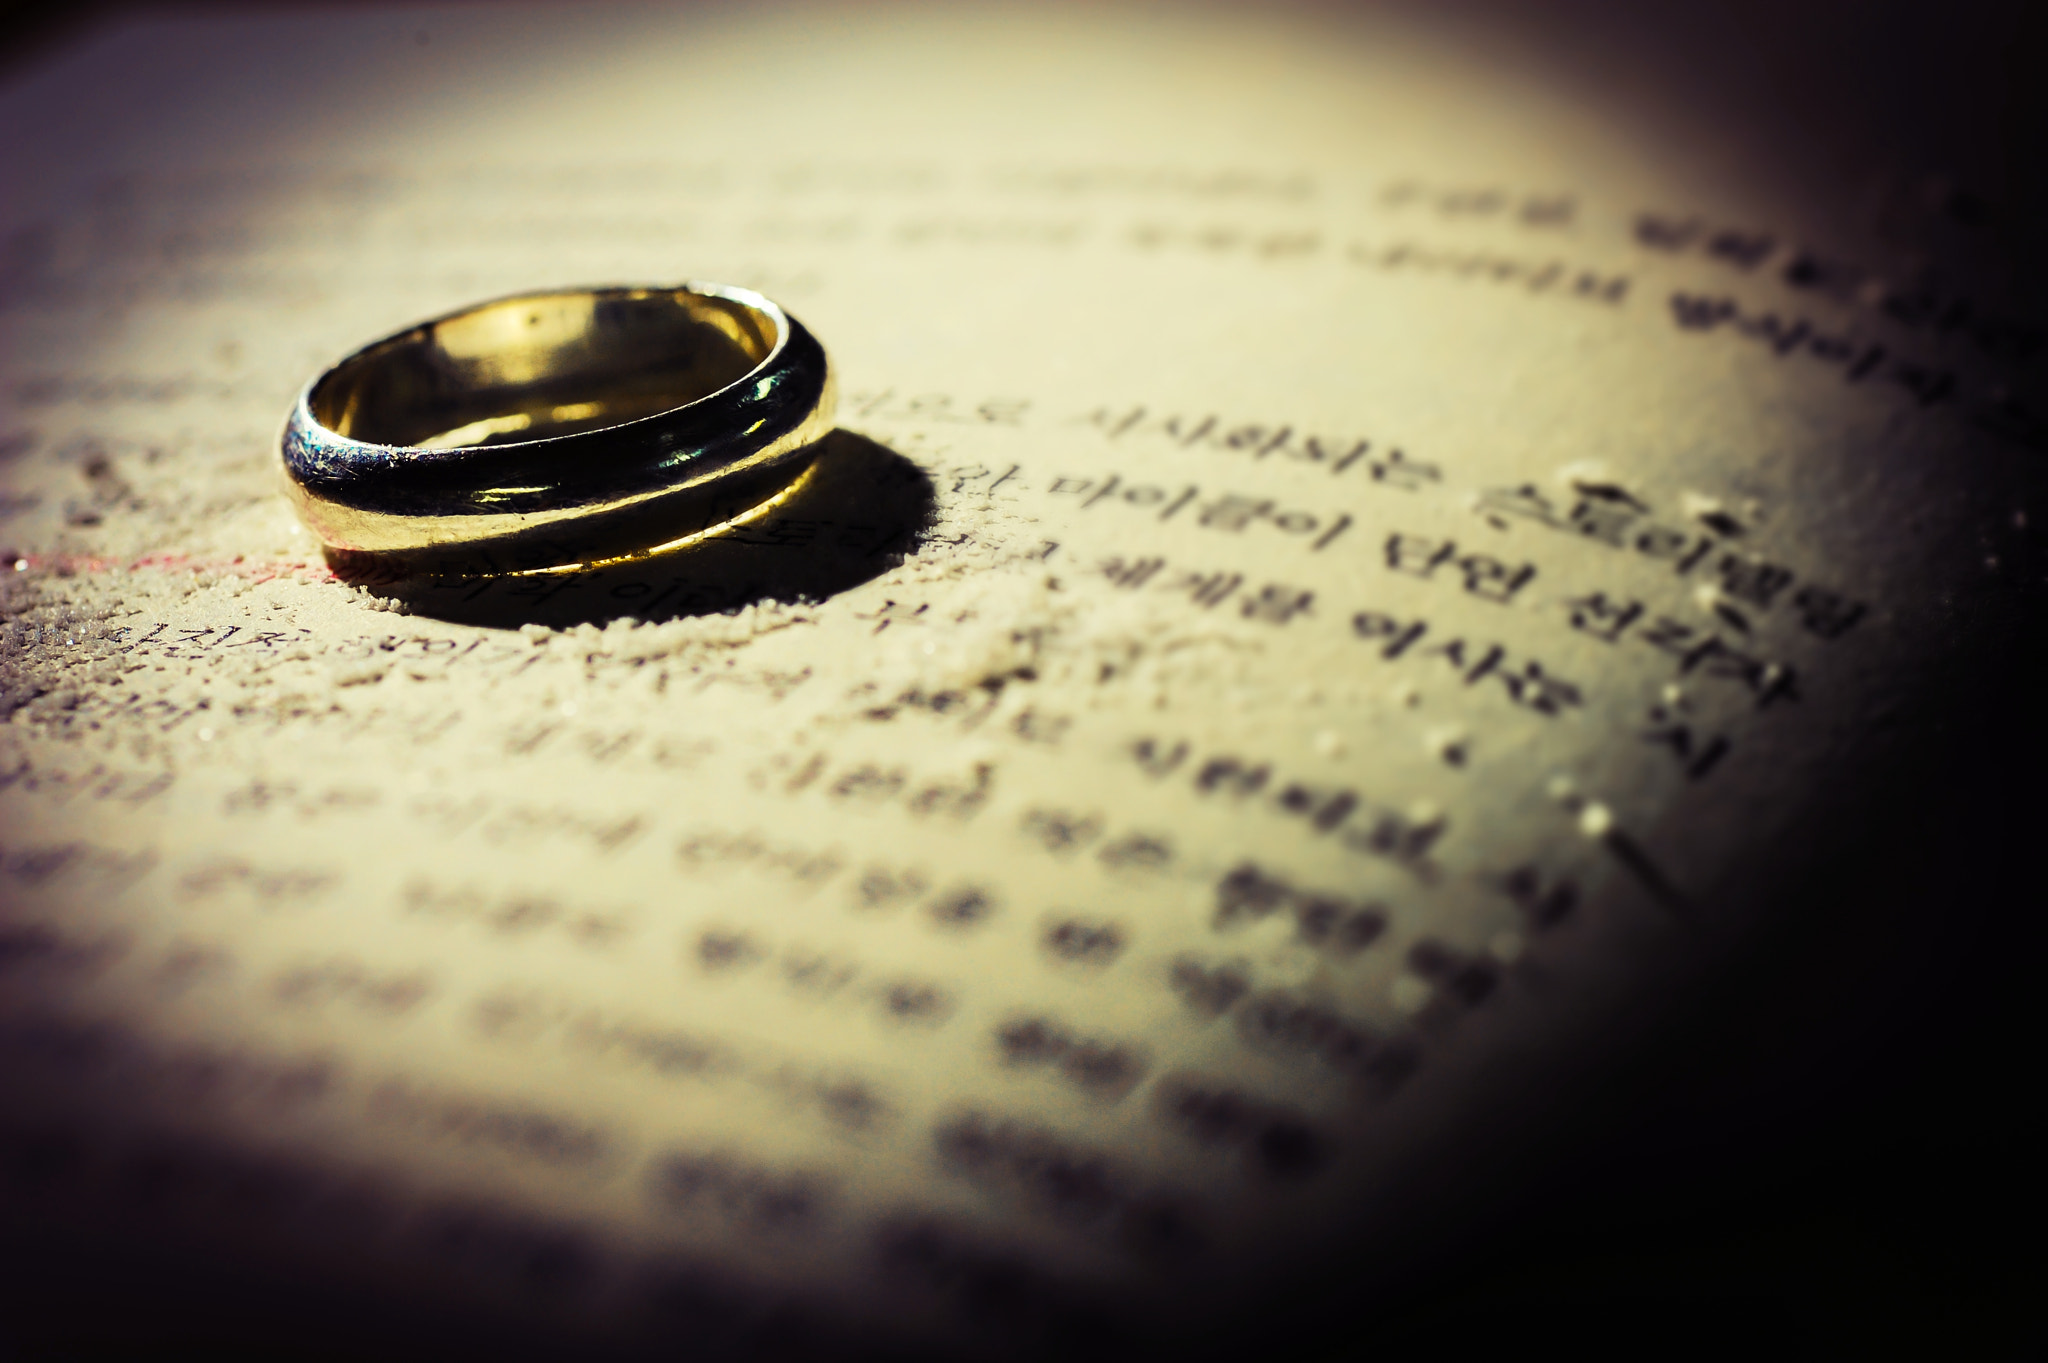 Photograph Ring by Bryan mardi on 500px